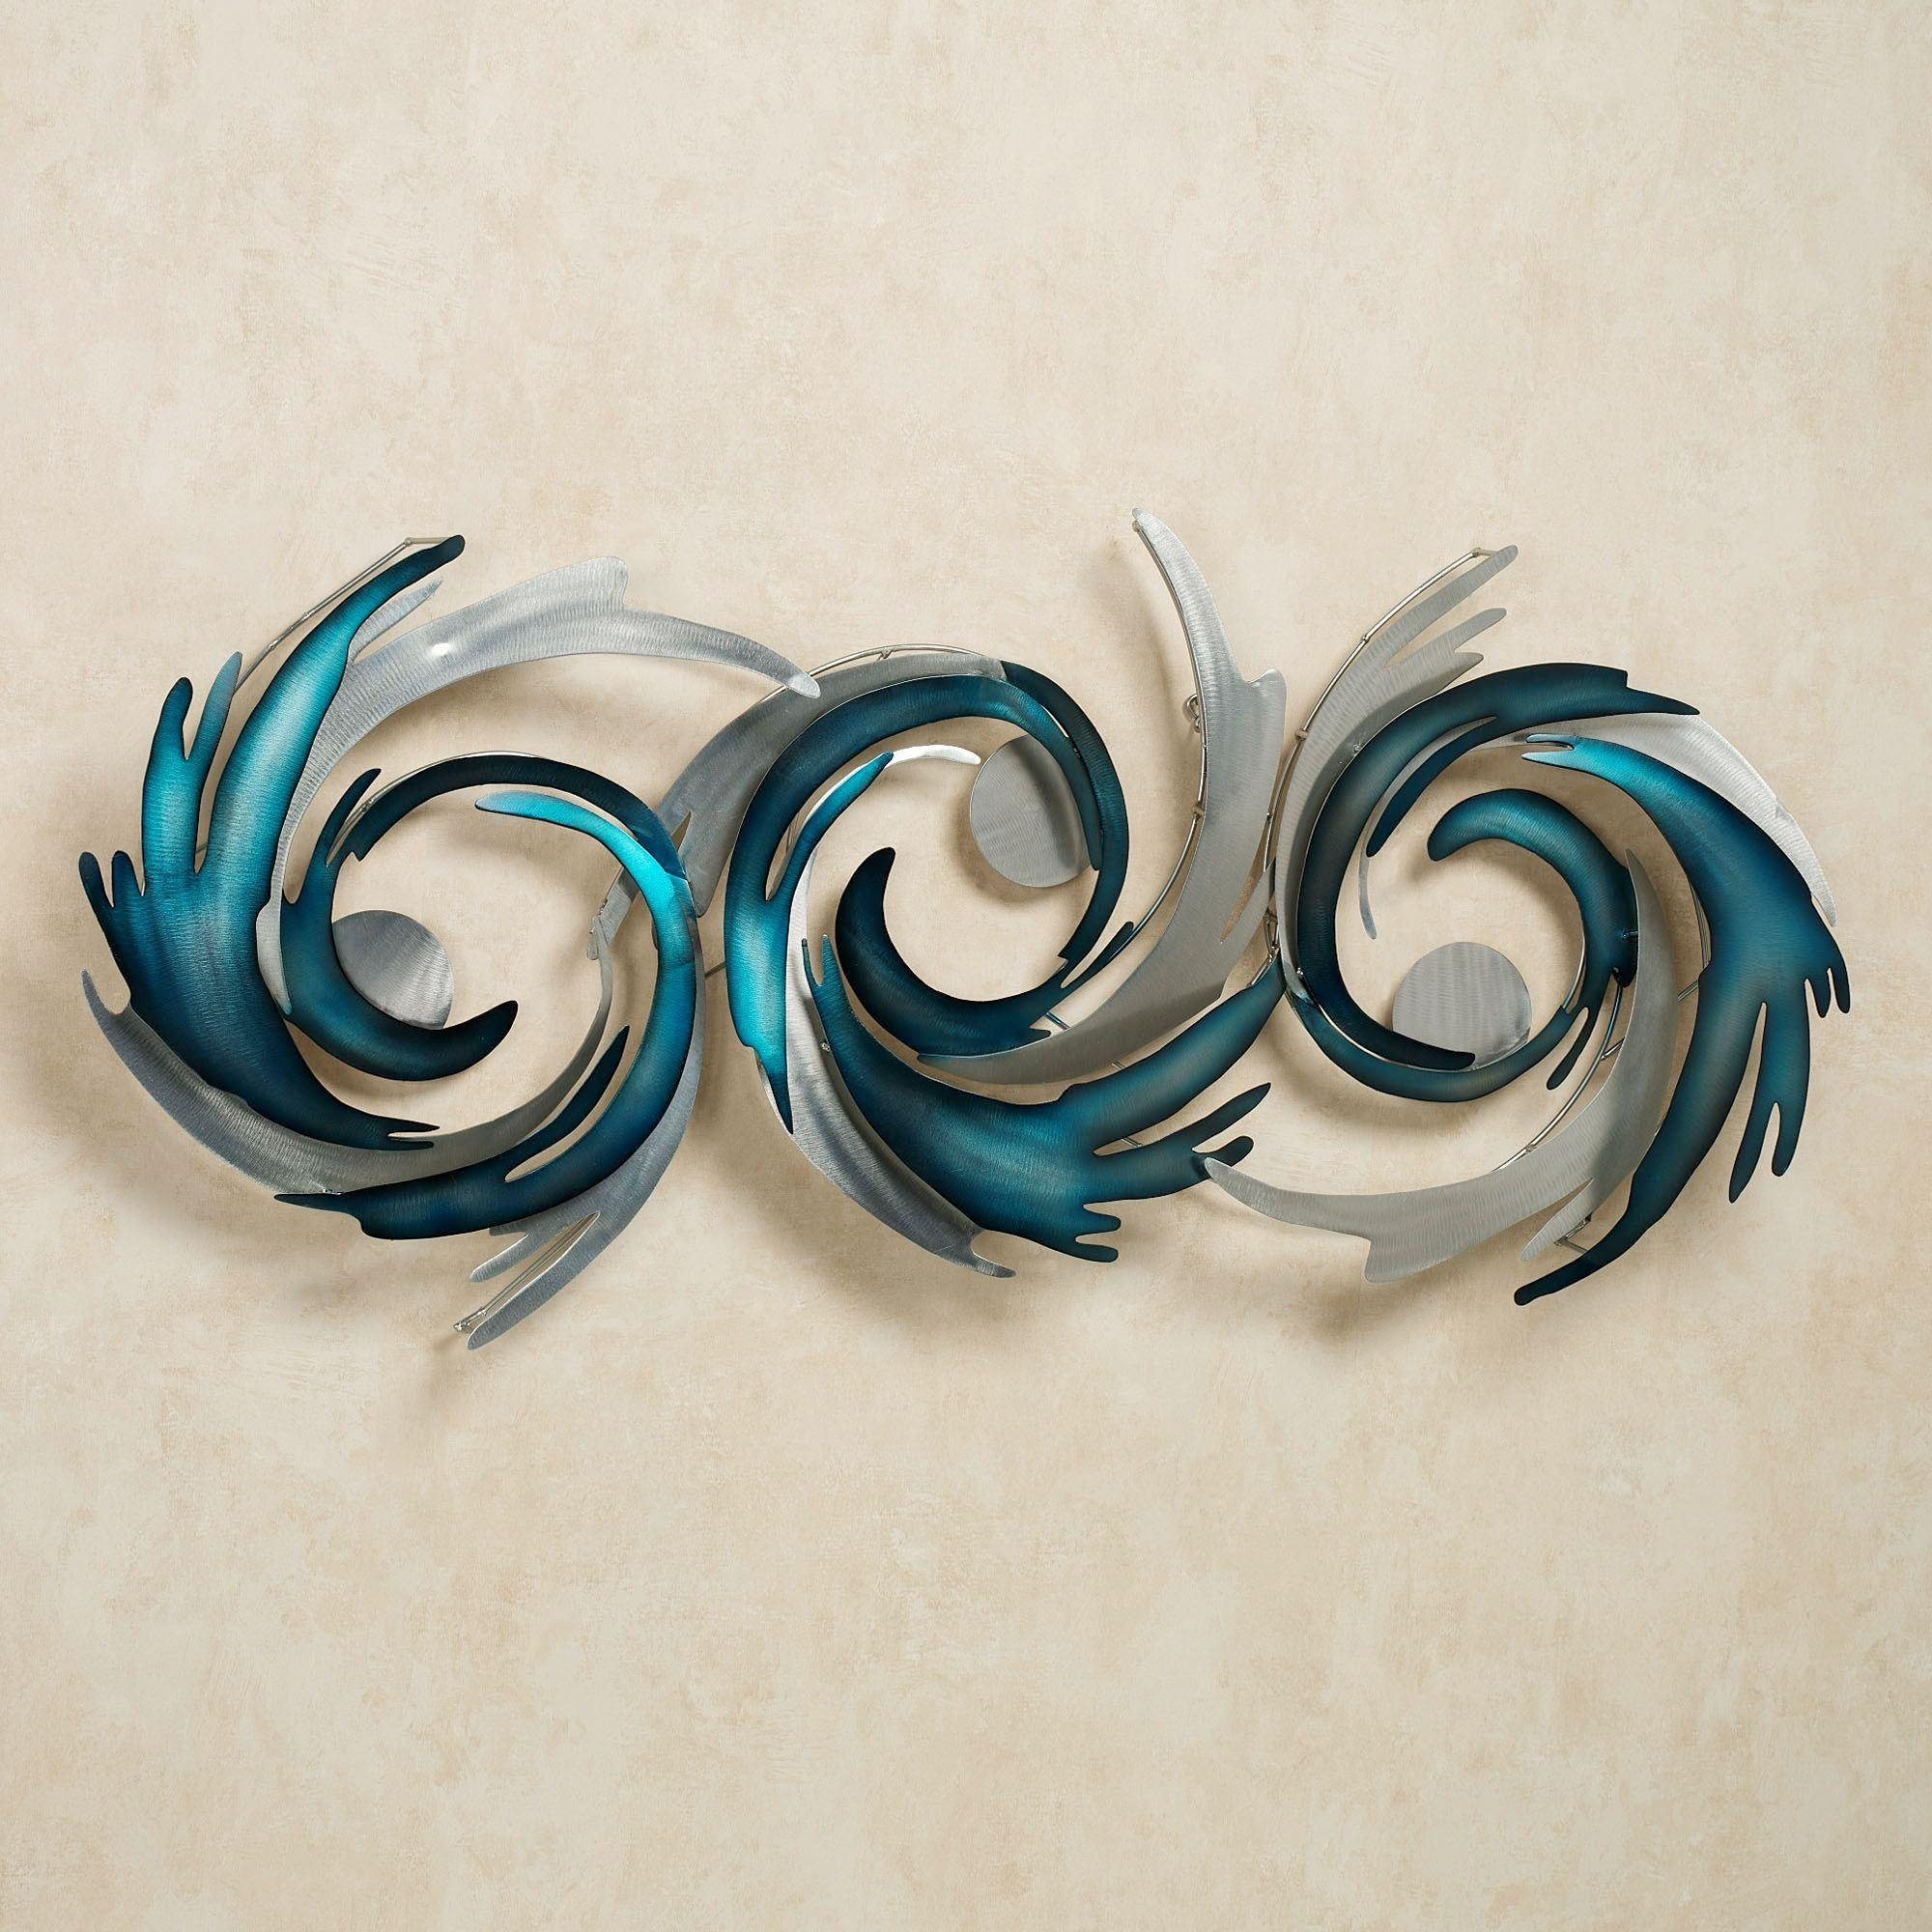 Perfect Storm Metal Wall Sculpturejasonw Studios With Regard To Contemporary Metal Wall Art Sculpture (View 4 of 20)